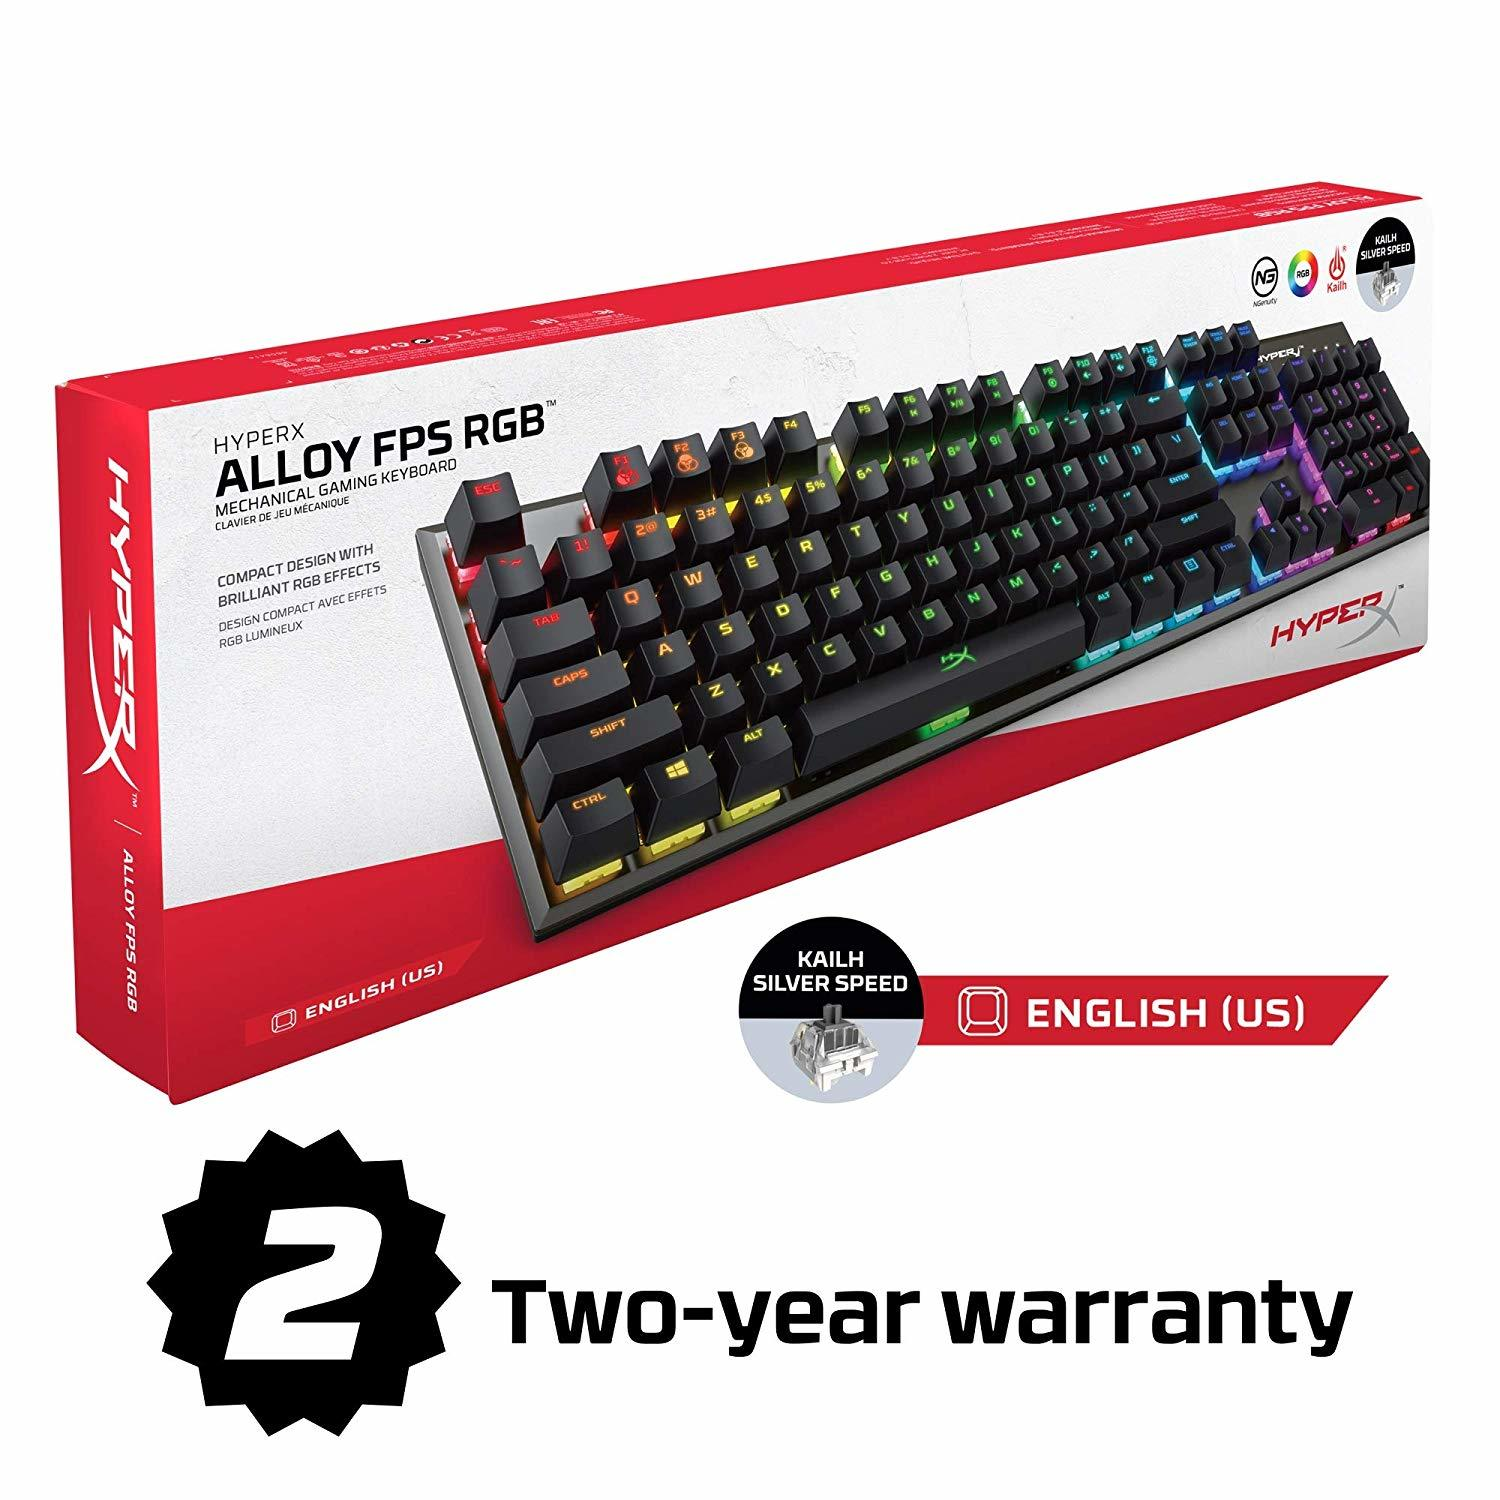 HyperX Alloy FPS RGB Mechanical Gaming Keyboard - PC Games